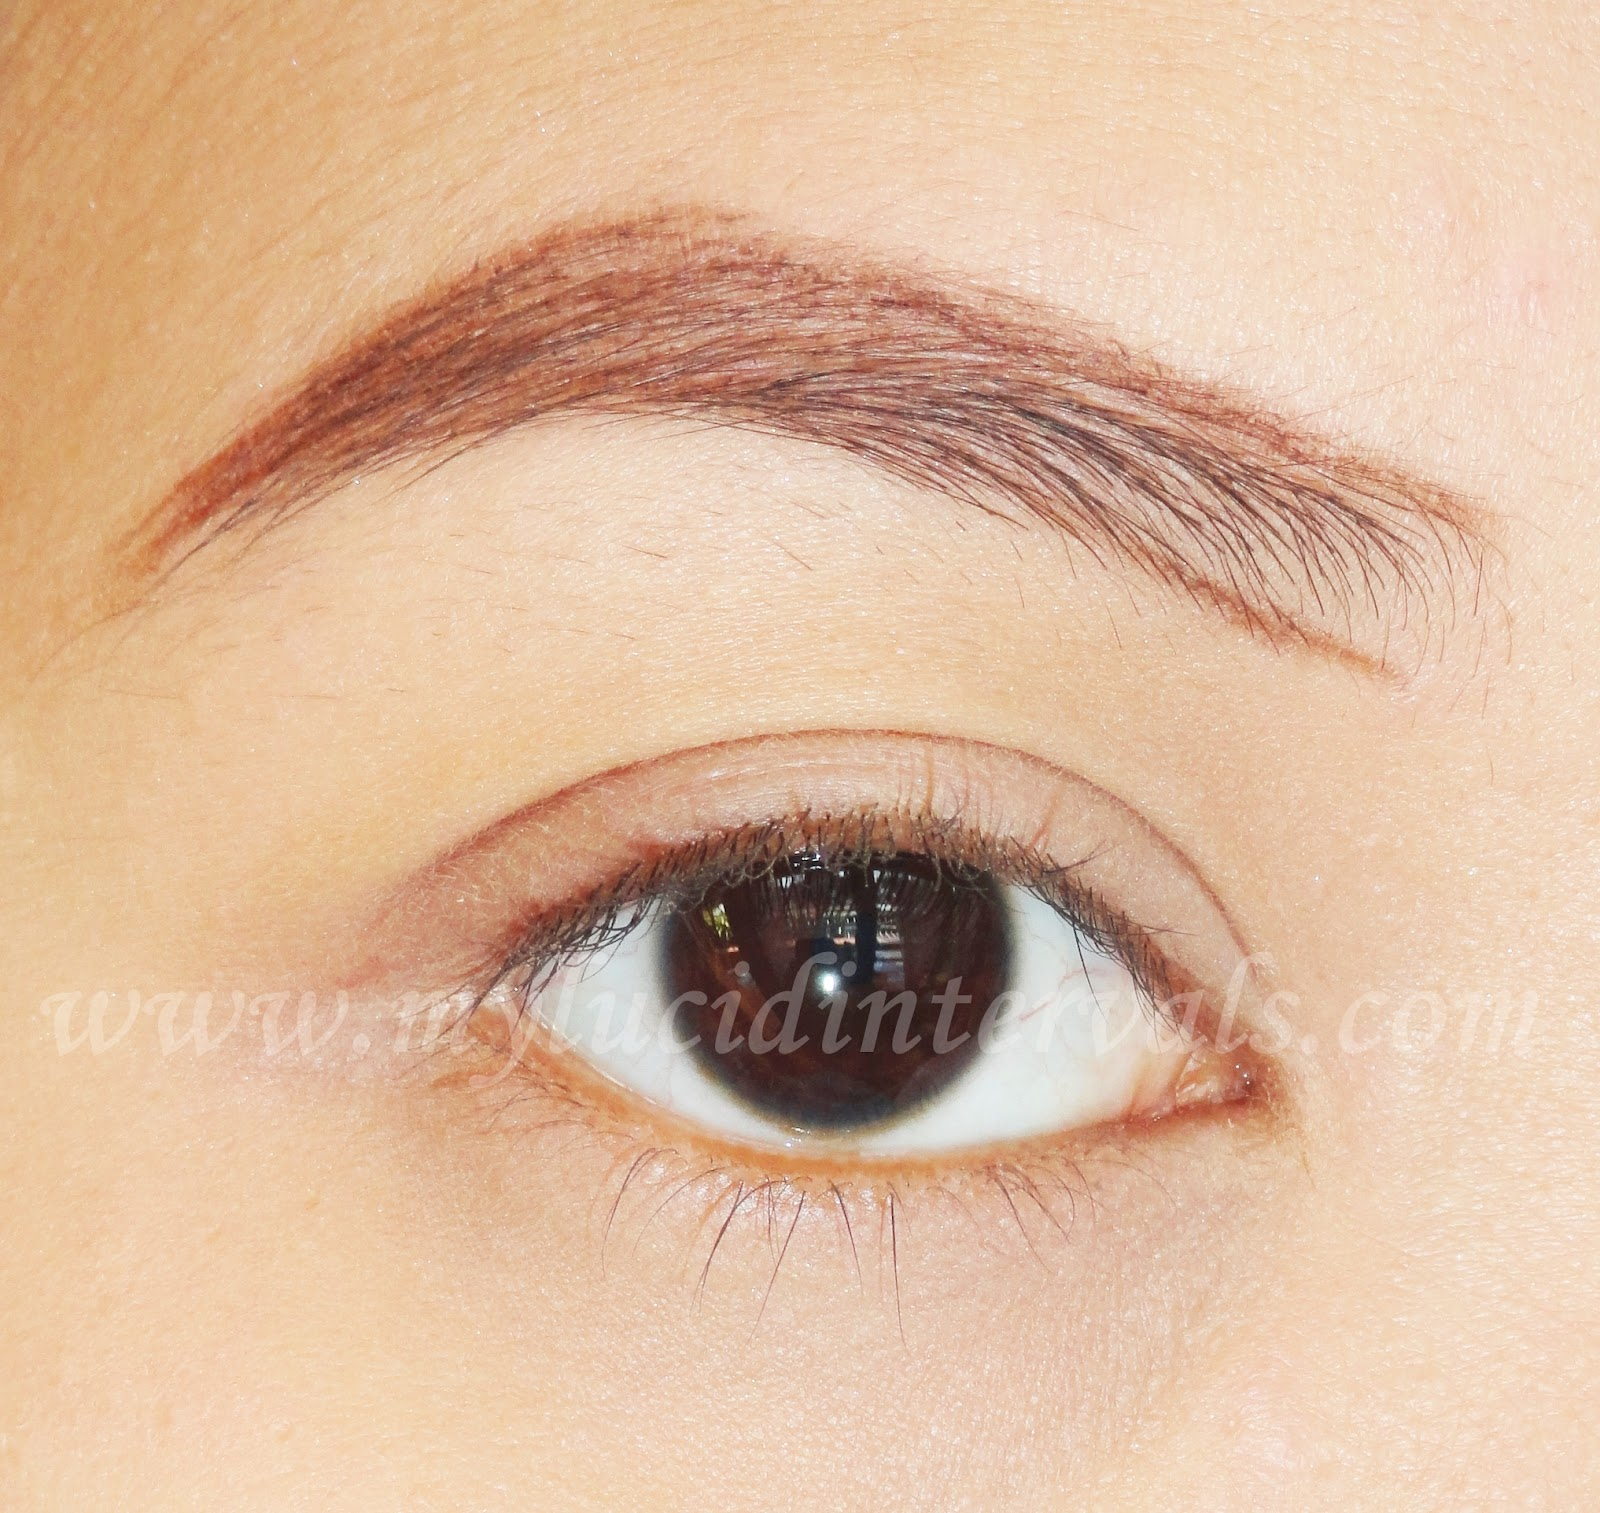 Etude House Brow Mascara Price Philippines The Eyebrow Color My Savers Drawing Eye And Brows